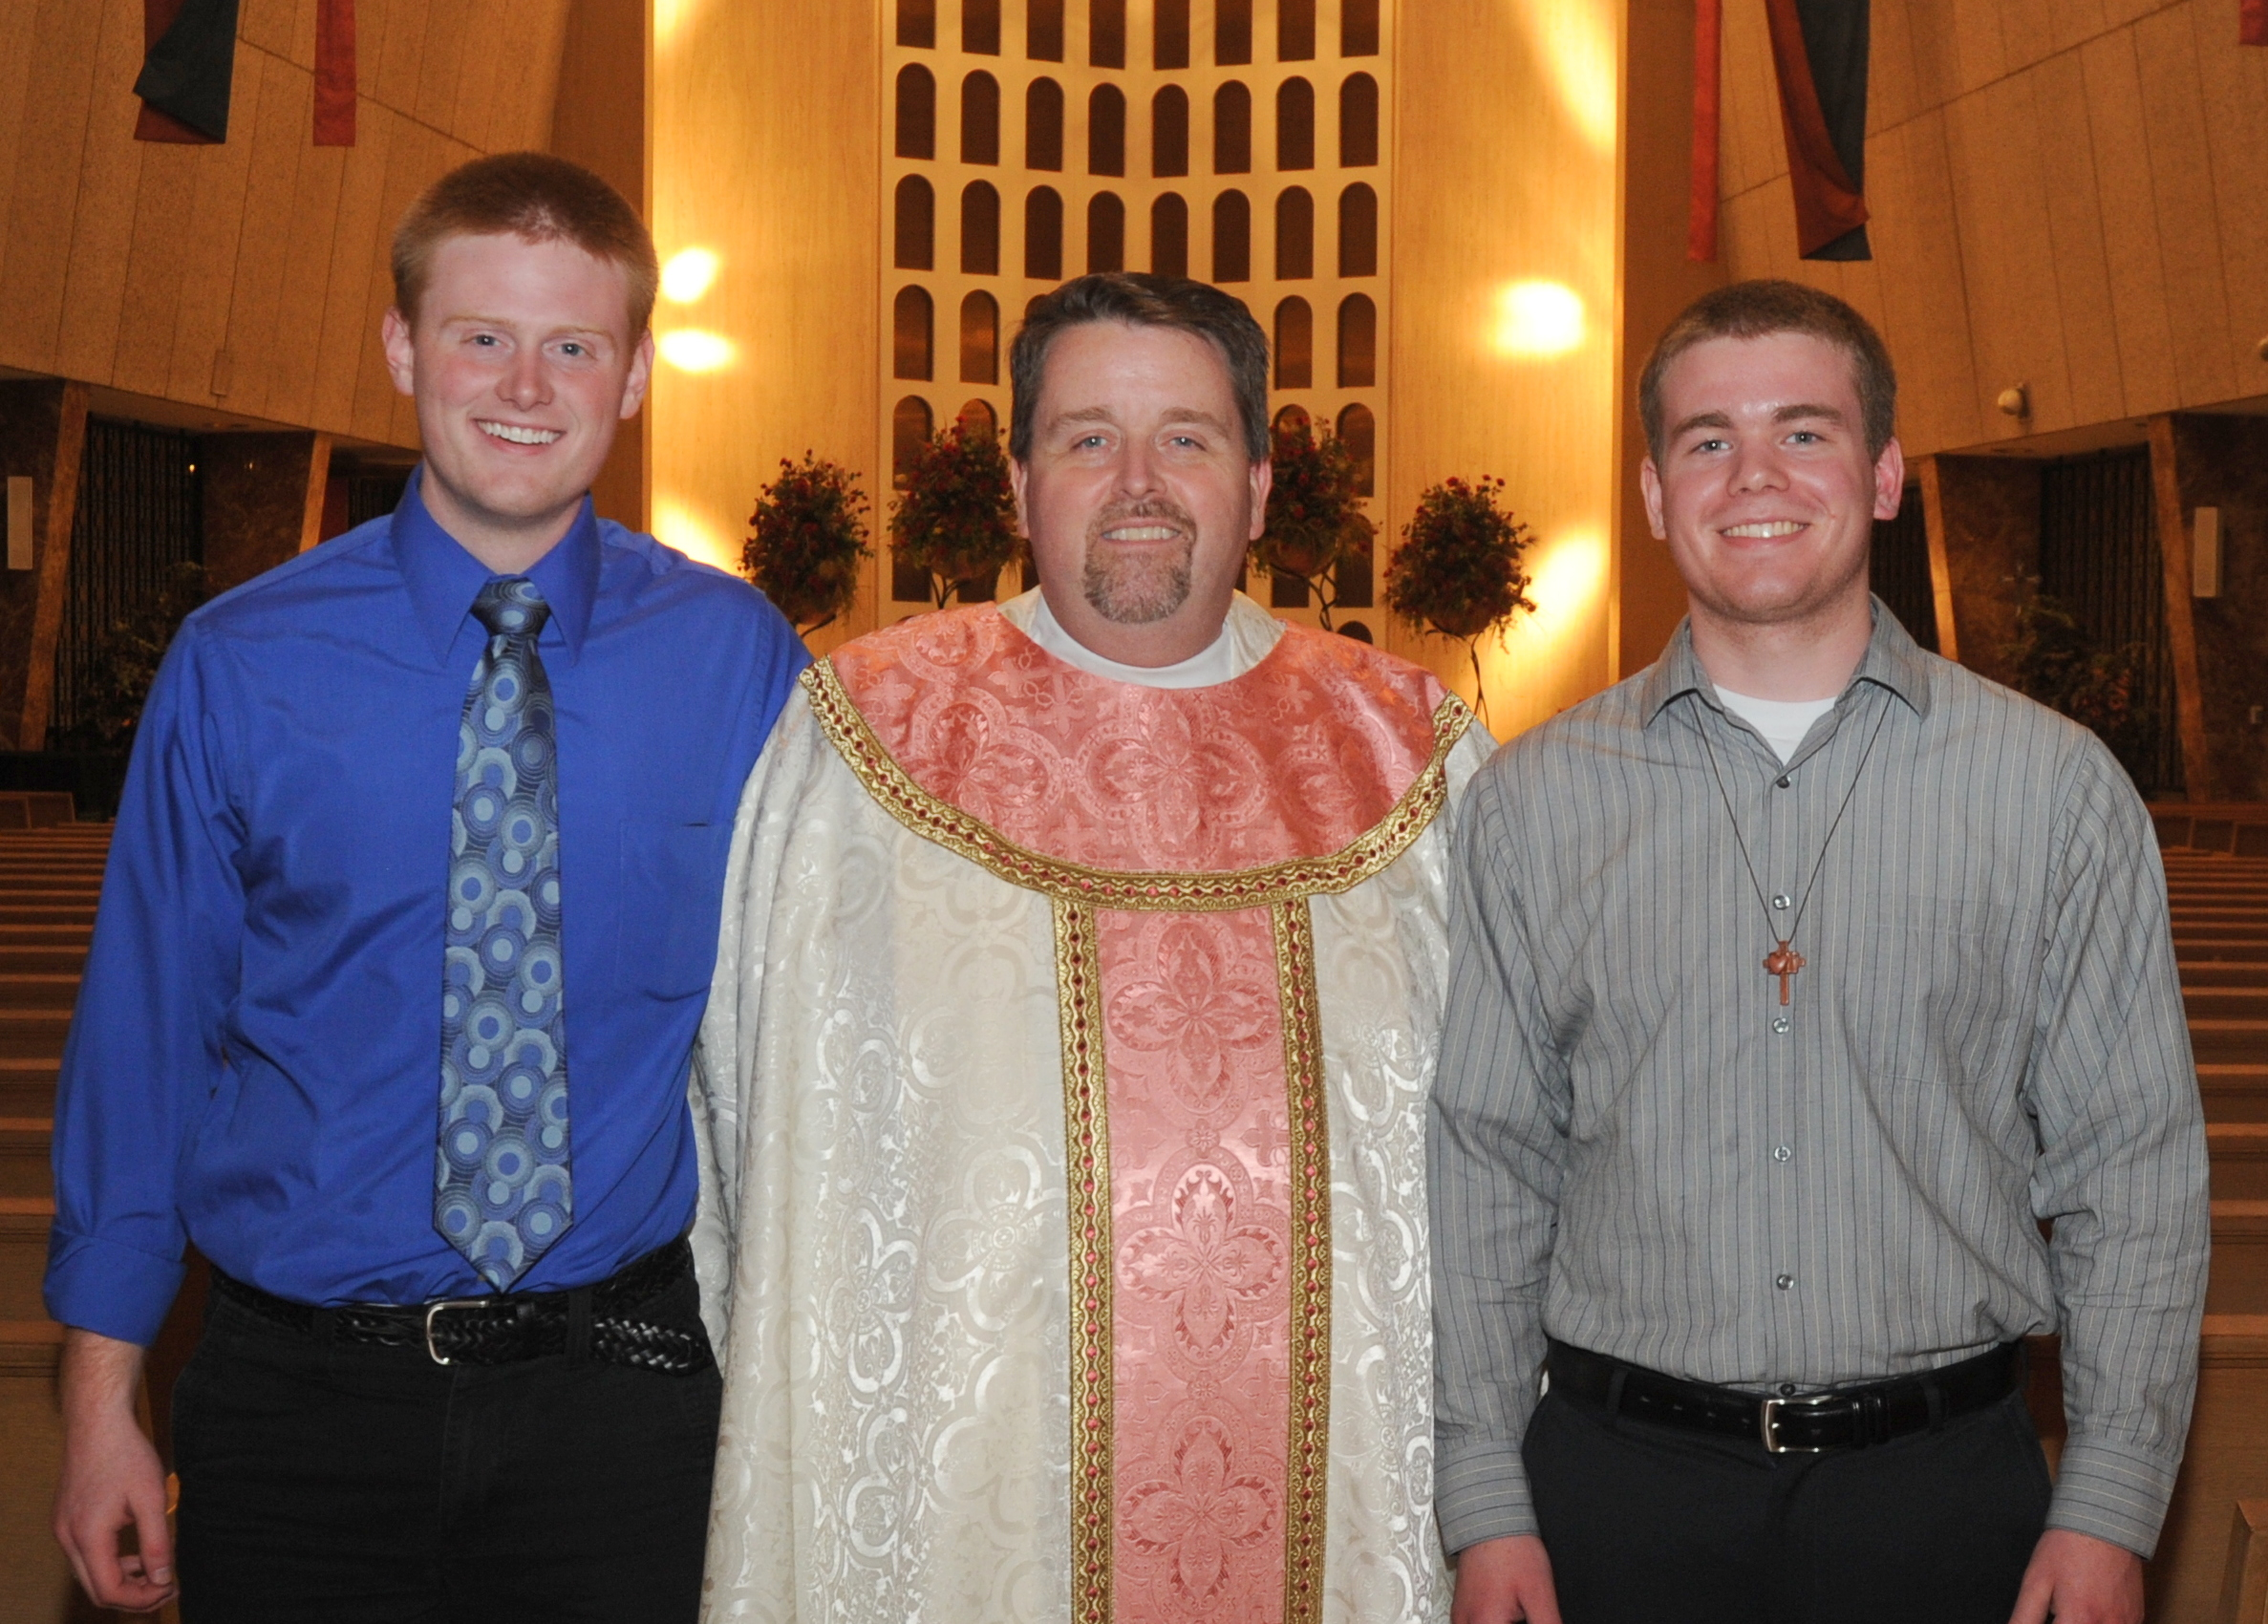 Fr. Tom McCarthy, O.S.A. with two Augustinian Pre-novices